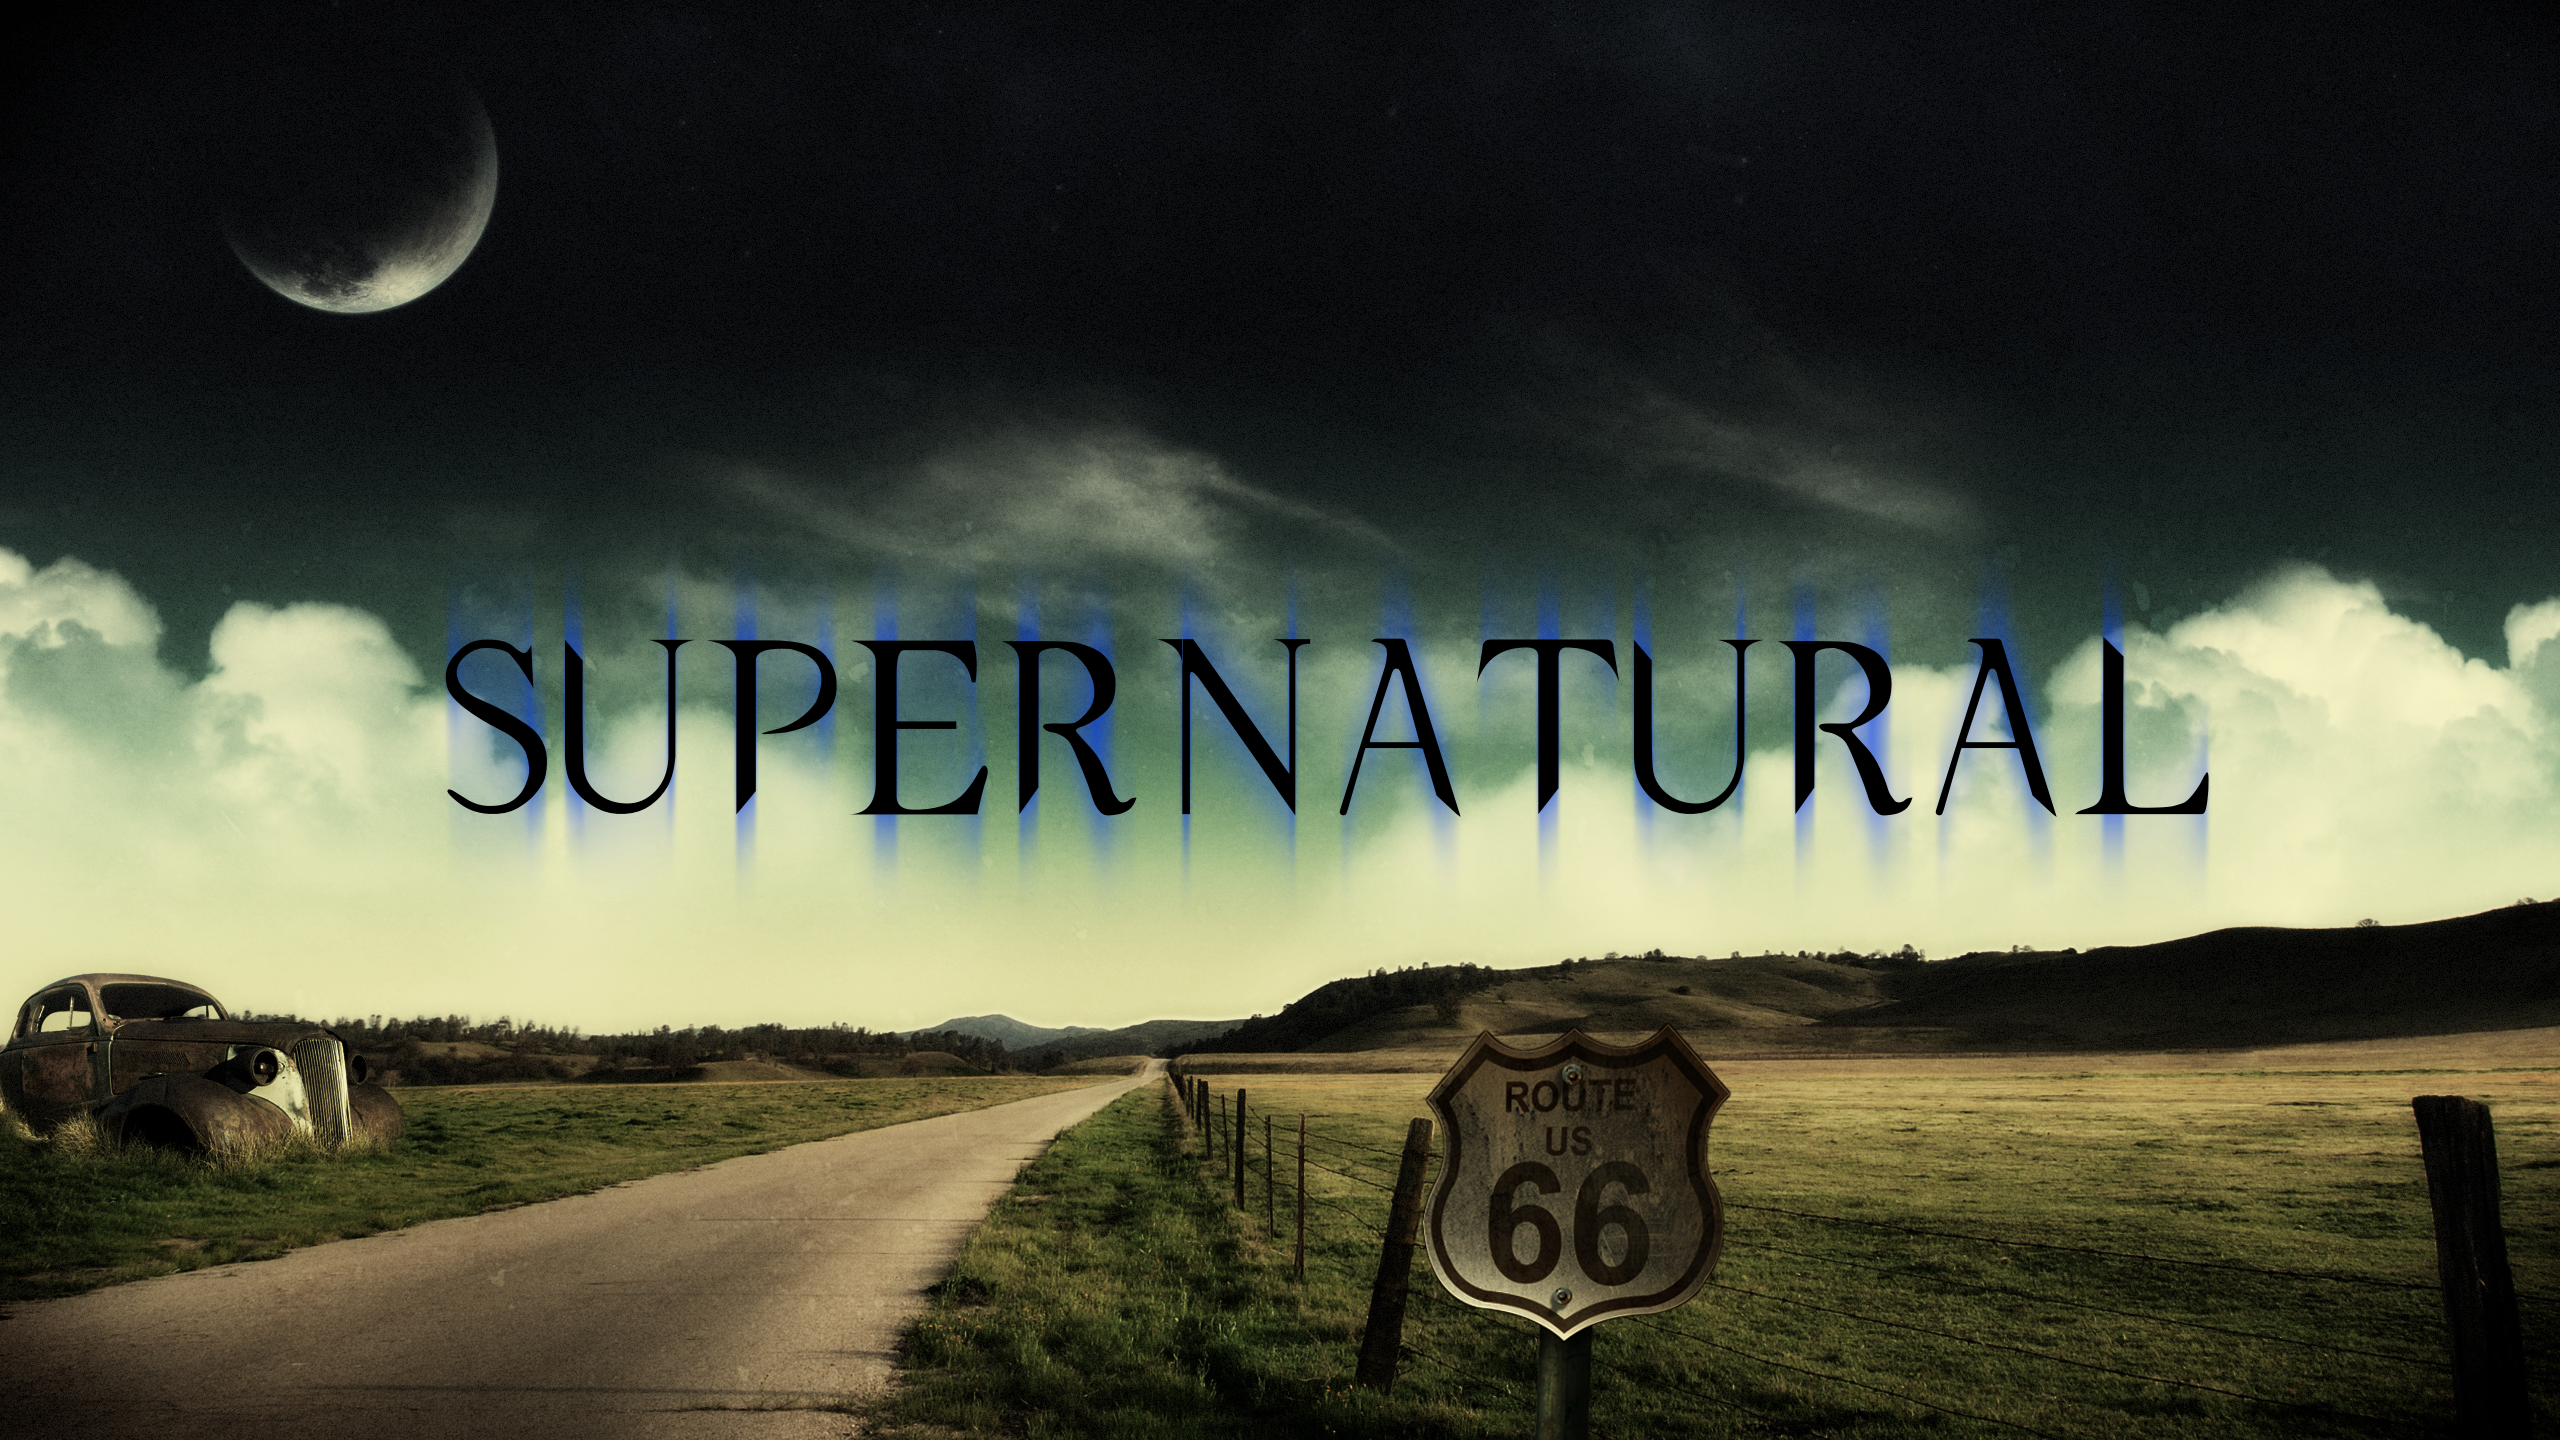 Related Supernatural Backgrounds Castiel Supernatural Backgrounds 2560x1440